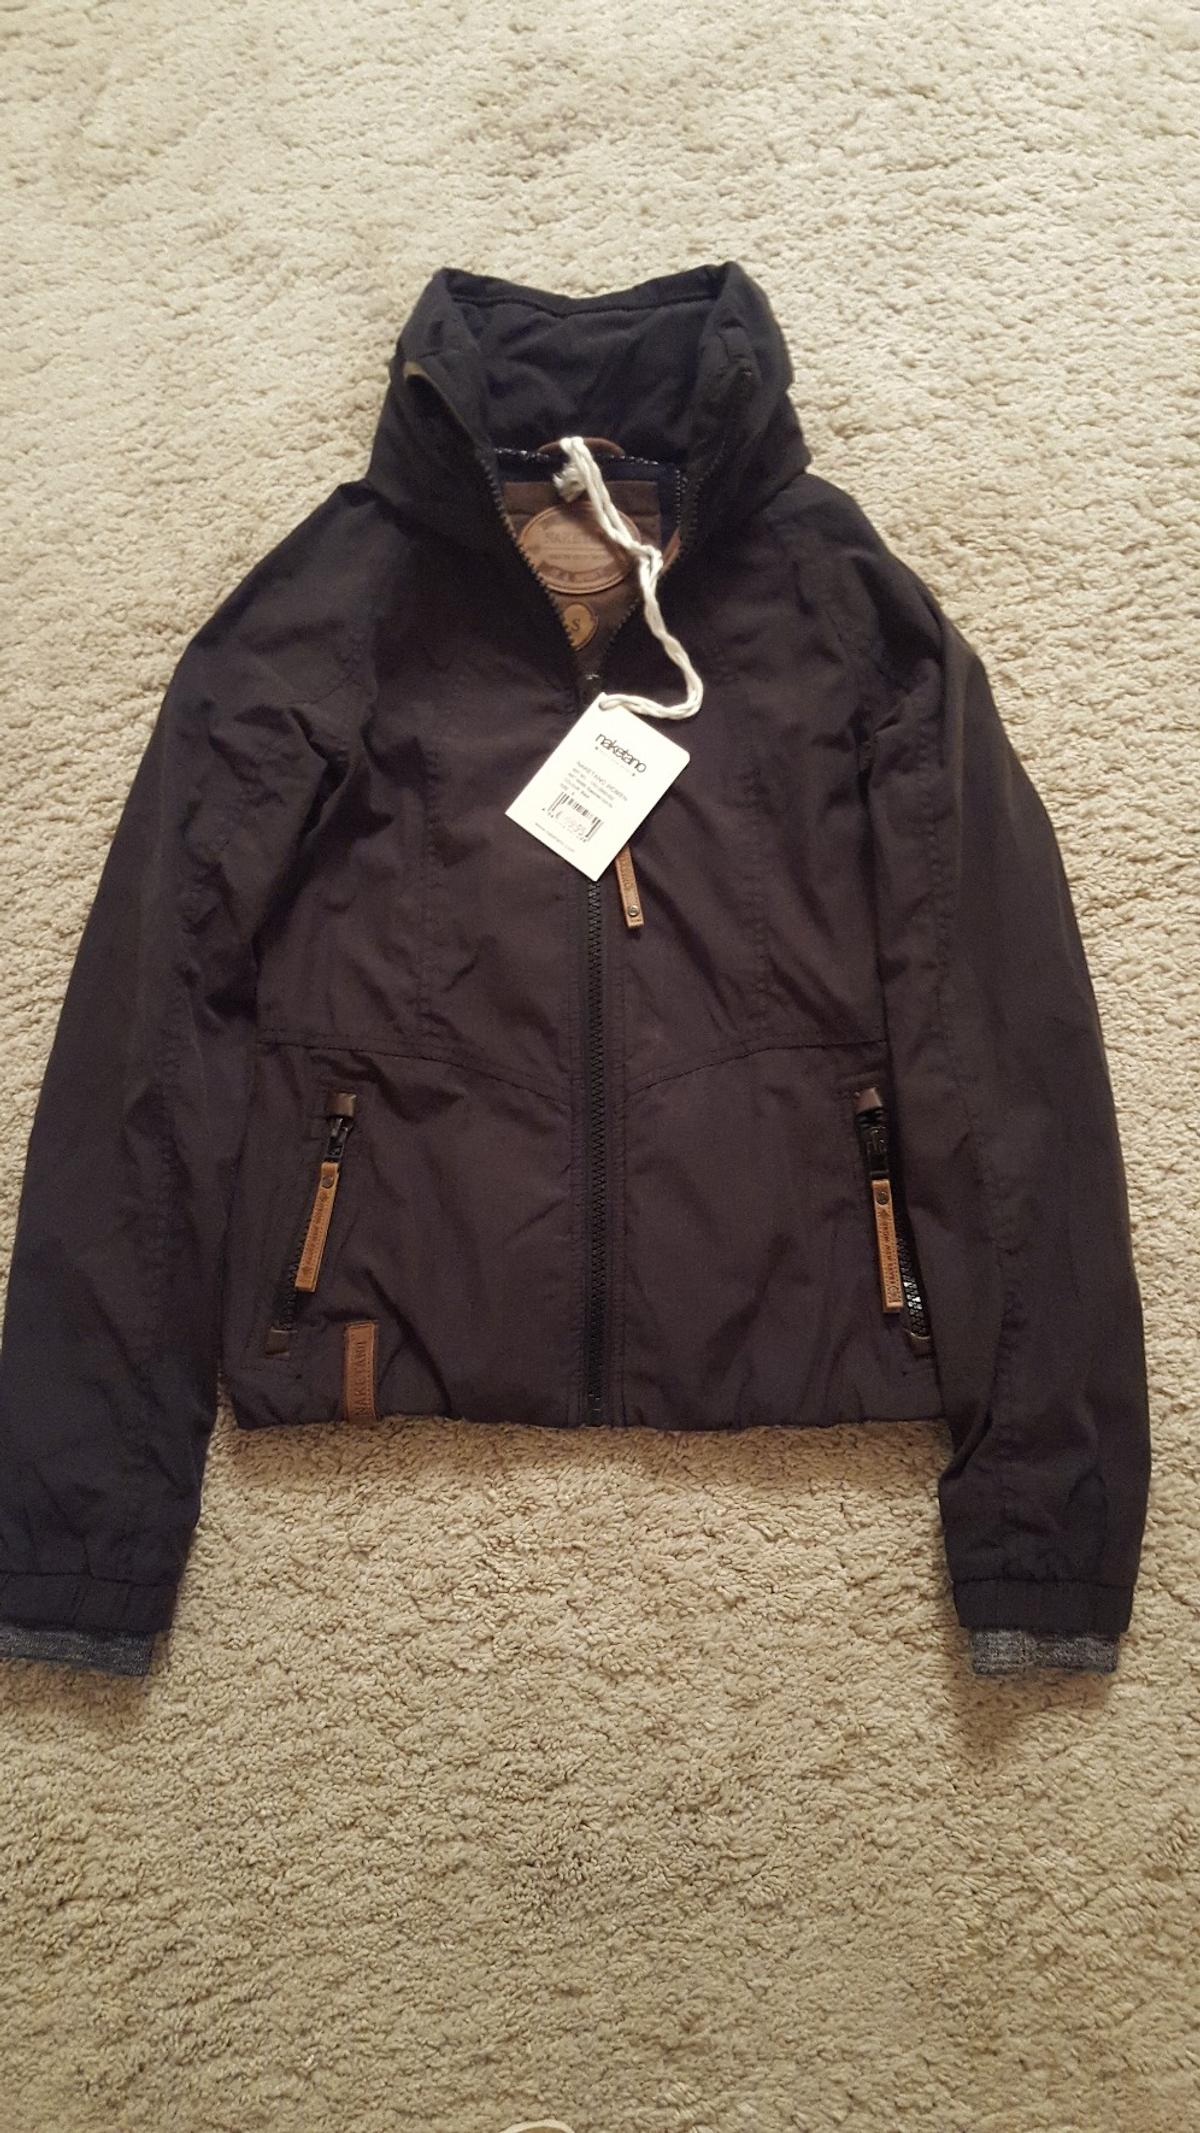 NAKETANO HERBSTJACKE DAMEN GR.S in 6432 Sautens for €79.00